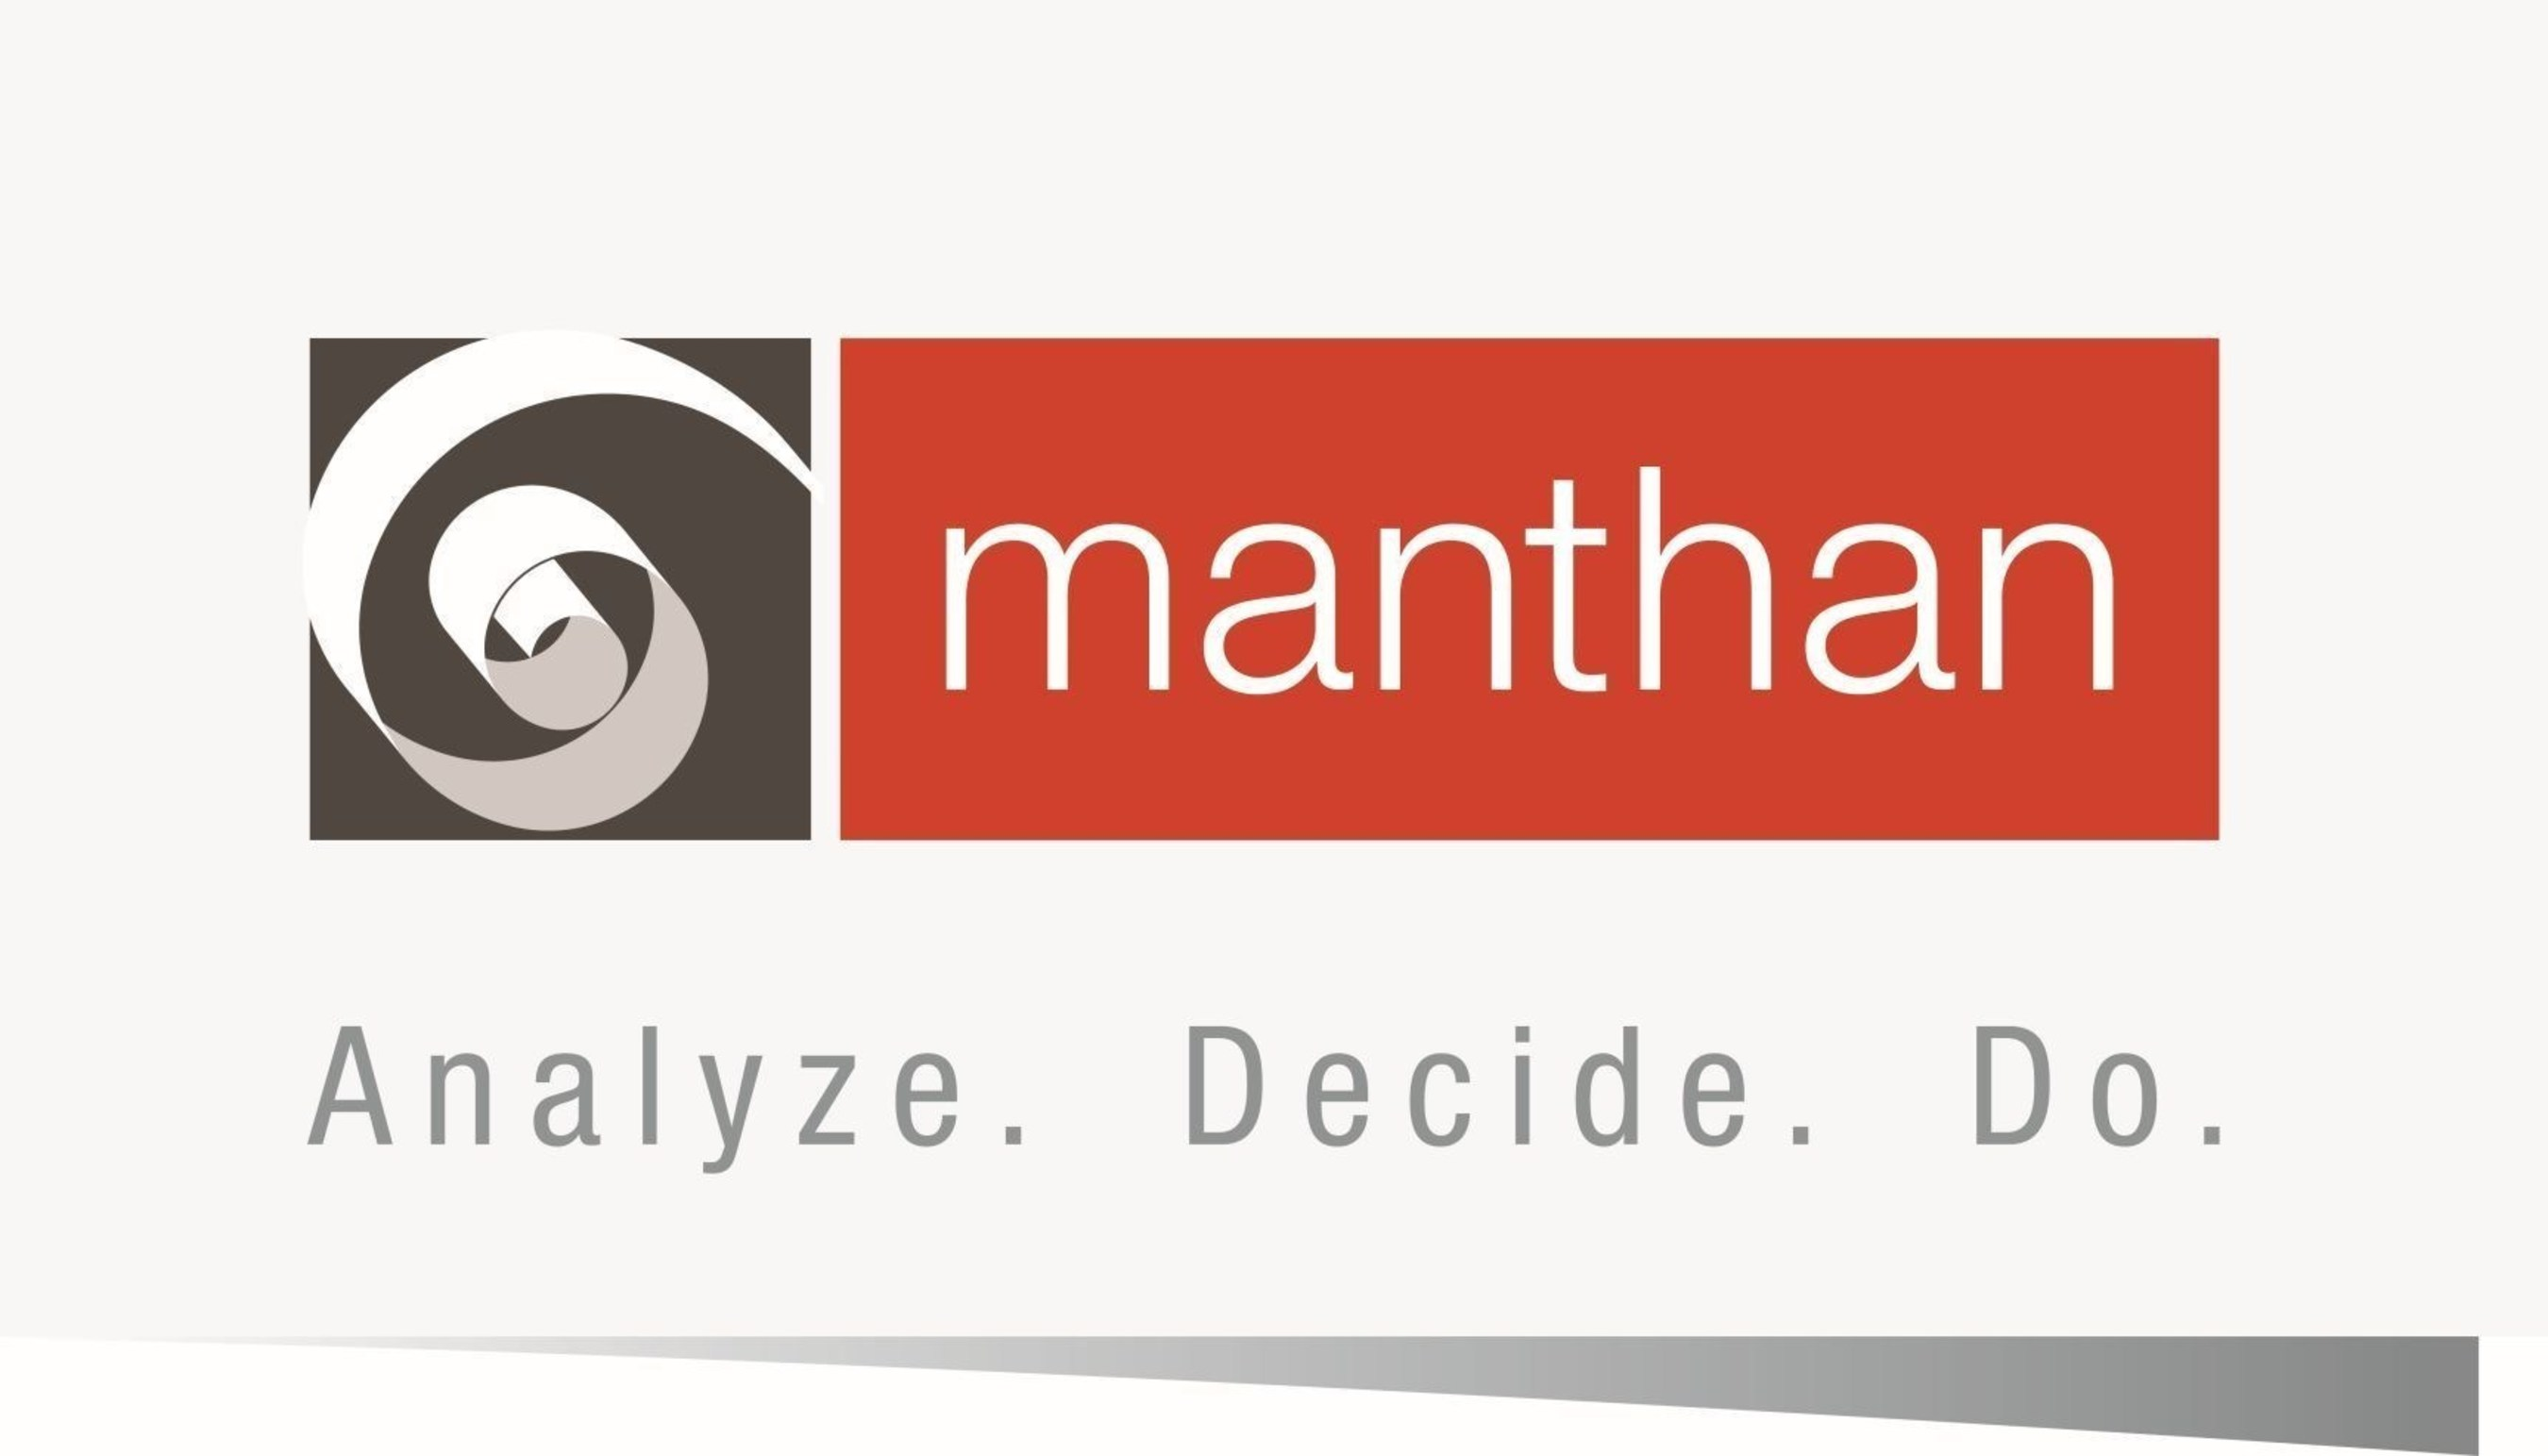 Manthan - IITC Partnership to Bring Big Data and Advanced Analytics Solutions With Zero Capital Expenditure, to the Middle East